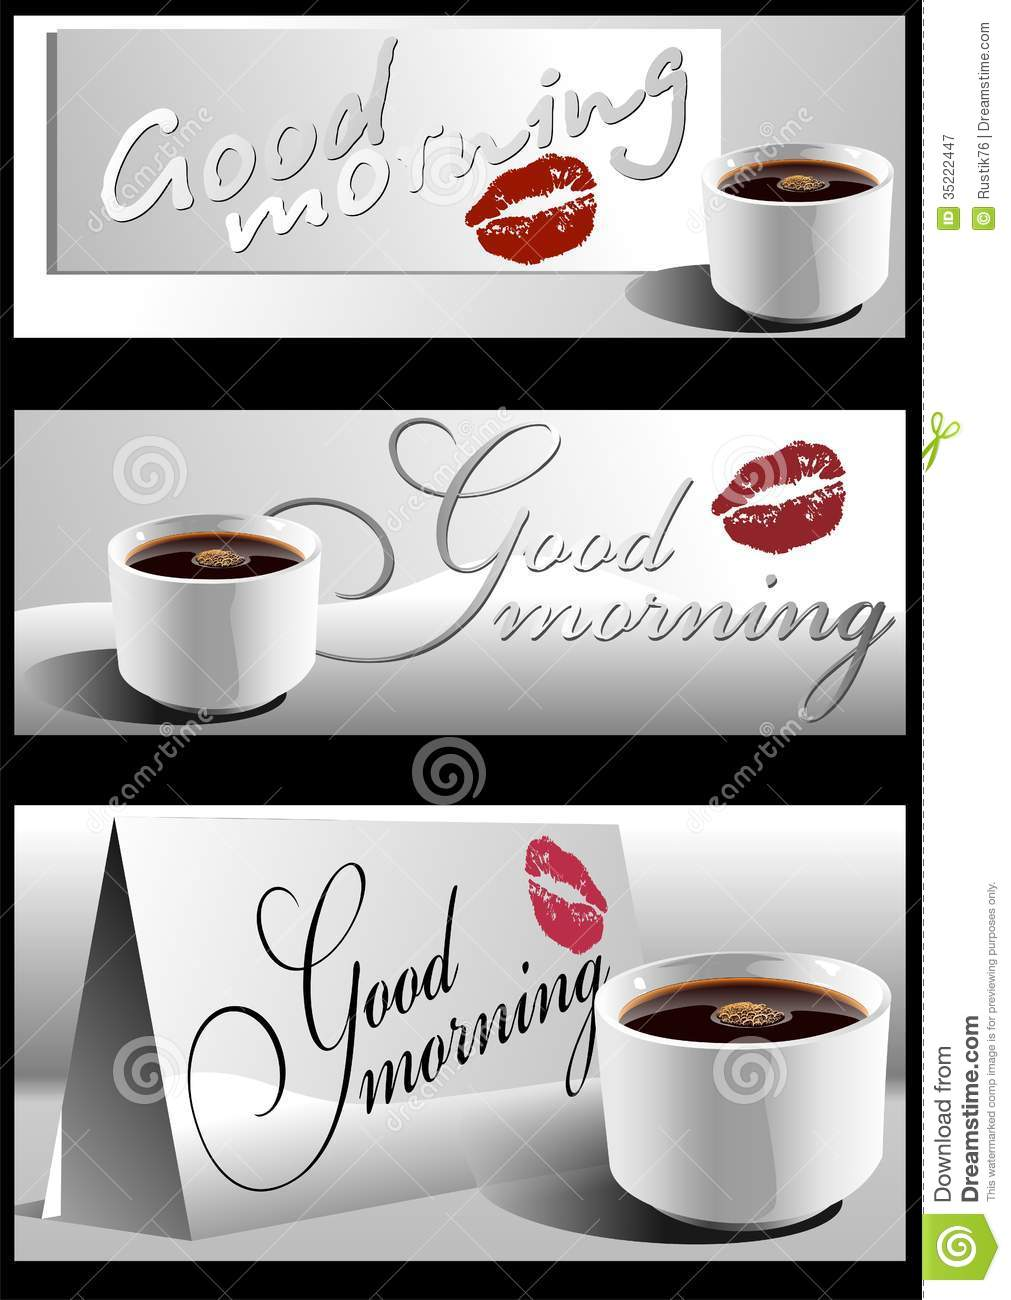 Good Morning 01 Vector Stock Vector Illustration Of Care 35222447